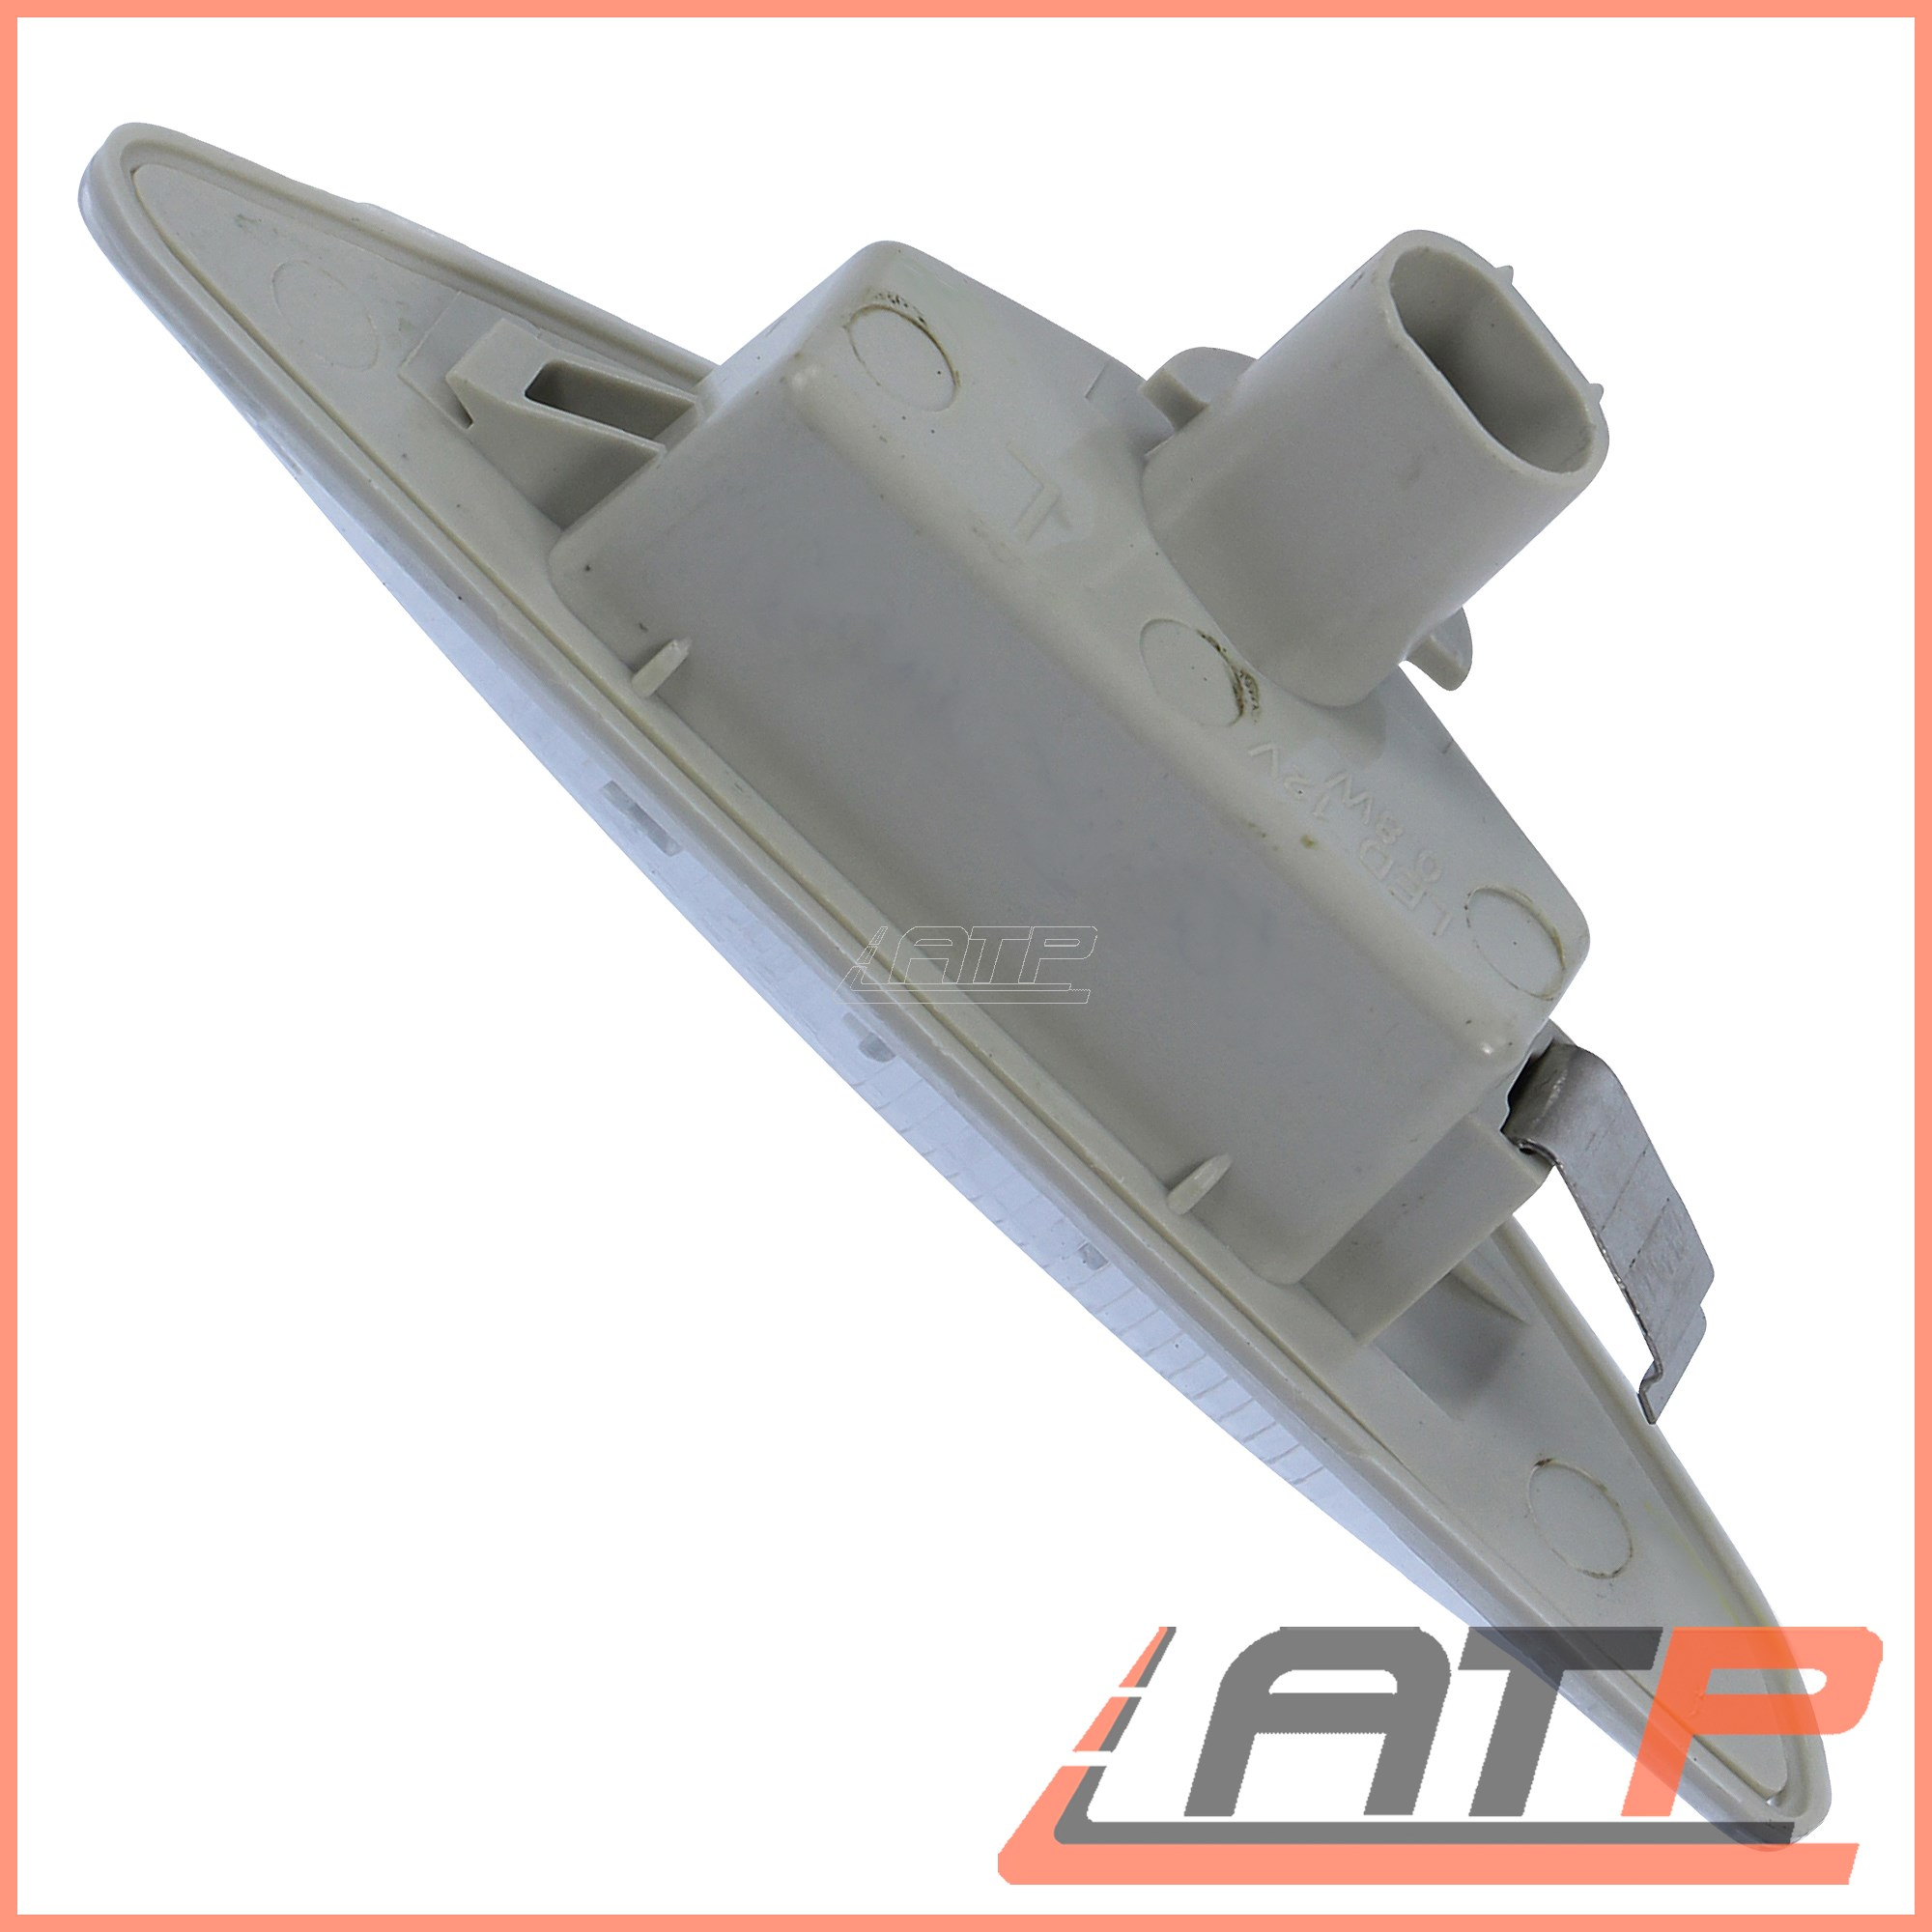 2X-LED-INDICATOR-TURN-SIGNAL-SIDE-REPEAT-LEFT-RIGHT-BMW-3-SERIES-E46 thumbnail 5